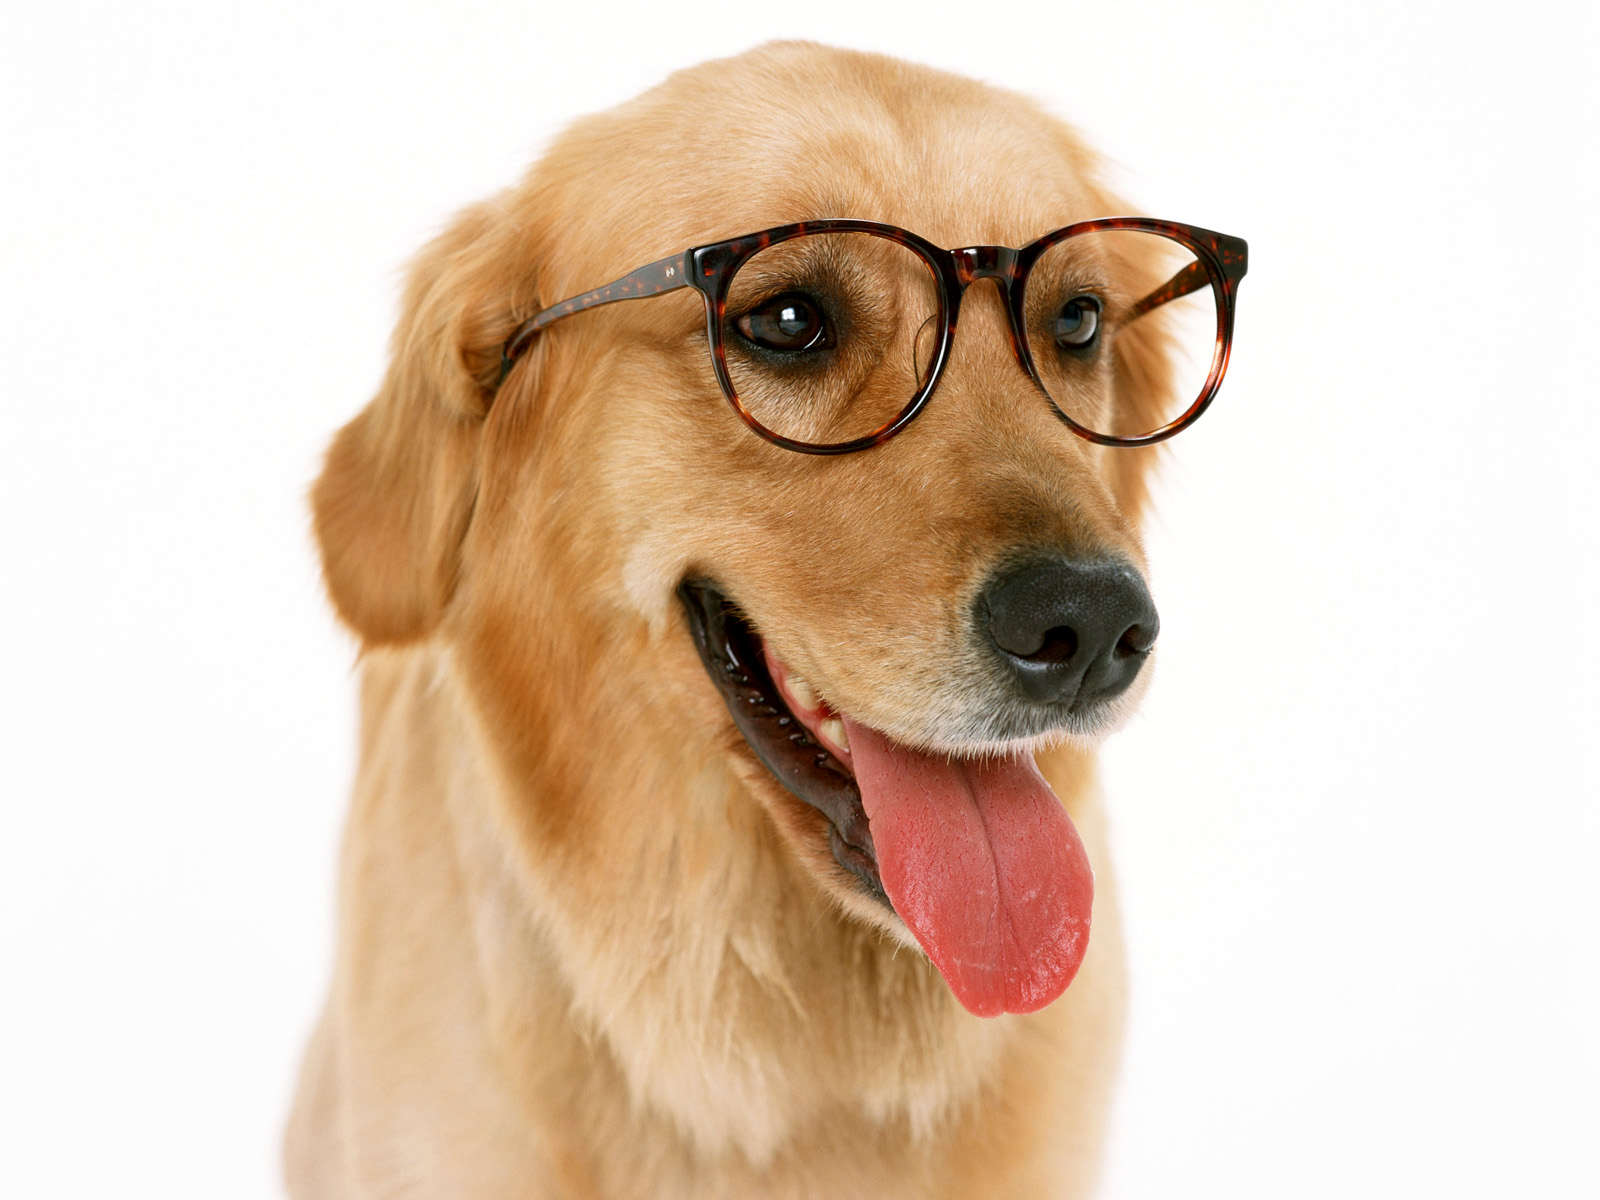 Image result for dog wearing glasses